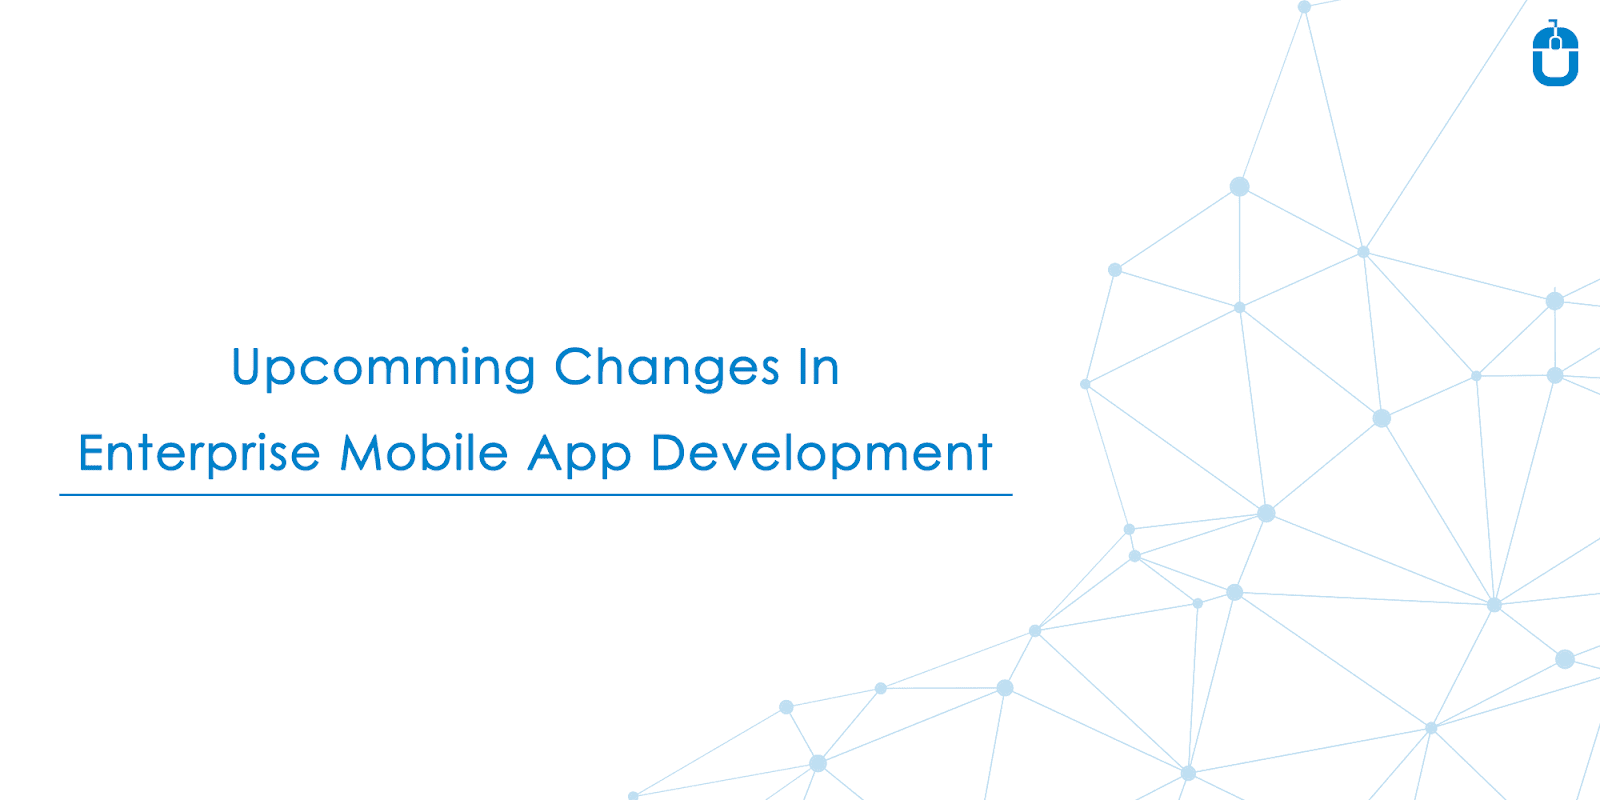 Upcoming Changes In Enterprise Mobile App Development